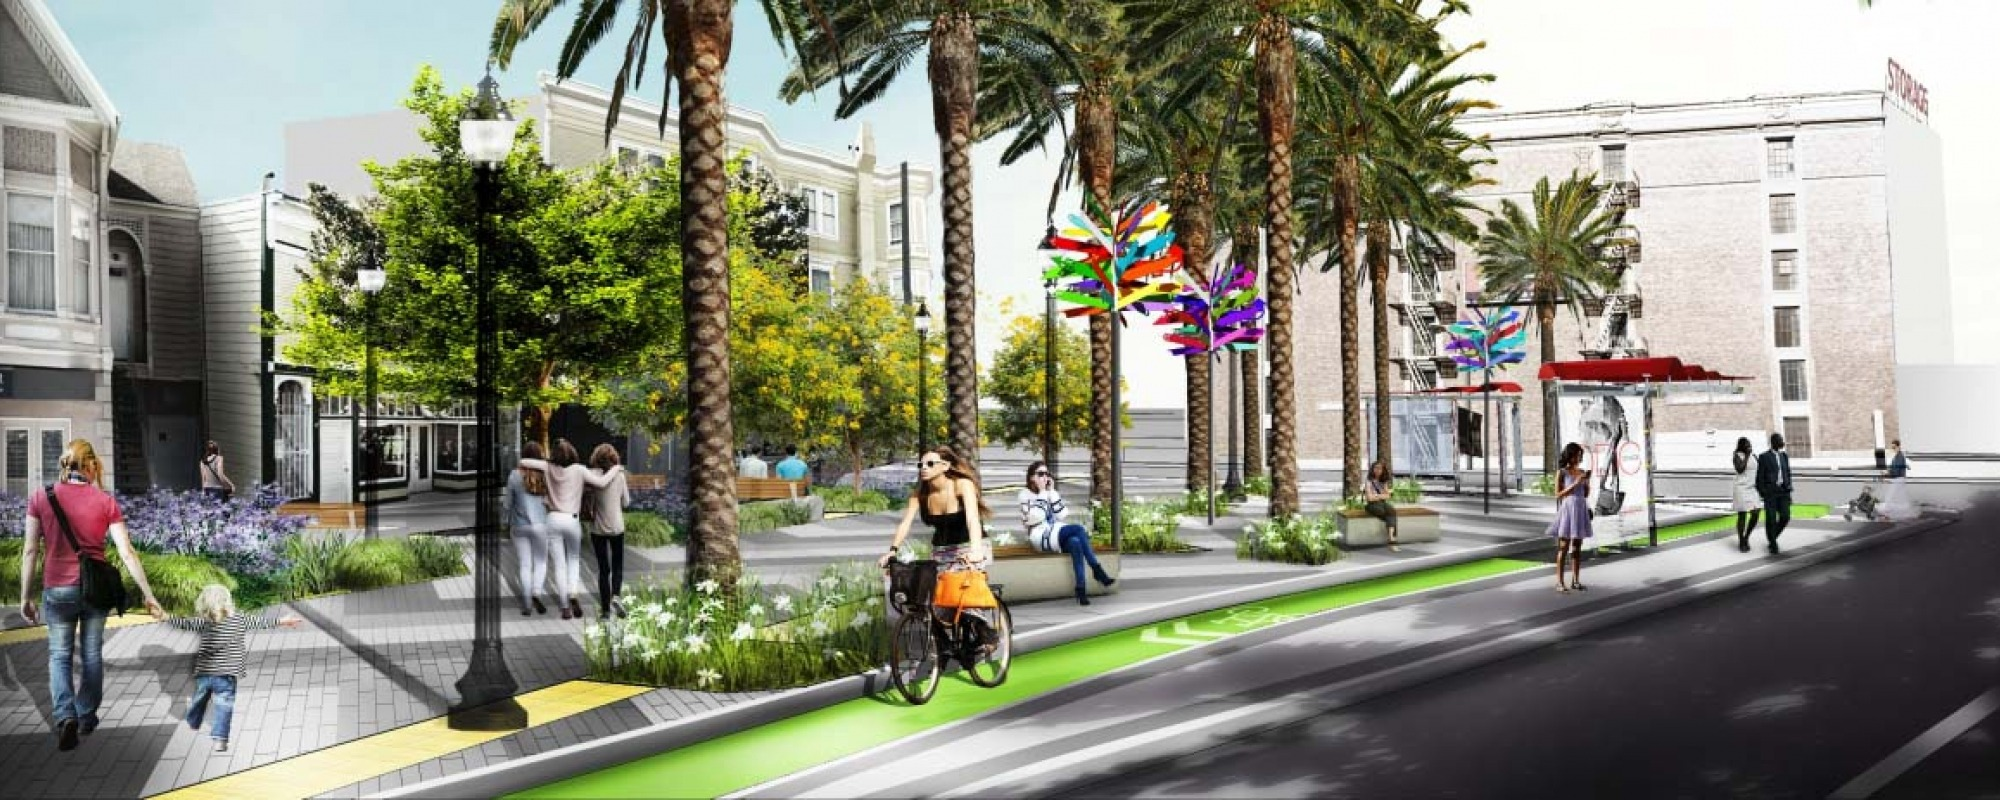 Masonic Avenue Streetscape Improvement Project rendering